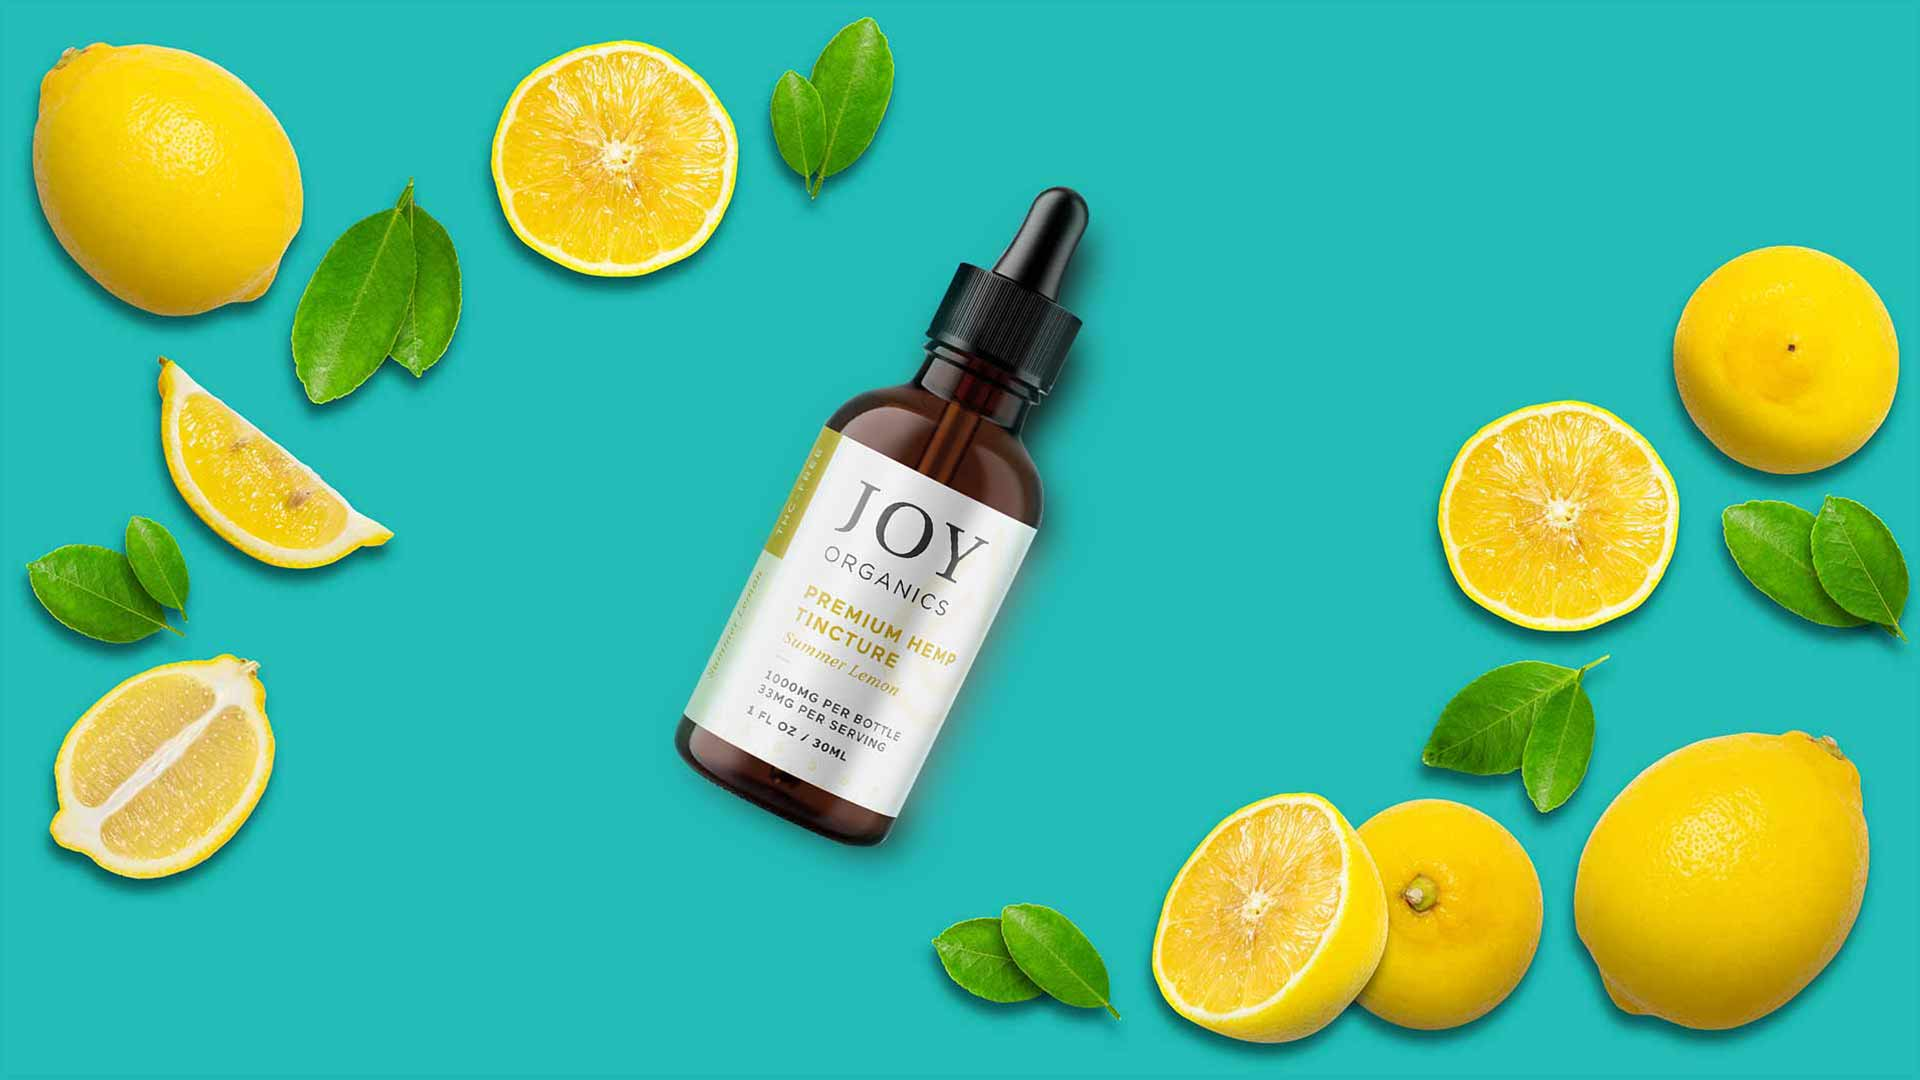 Joy Organics 1000mg hemp tincture